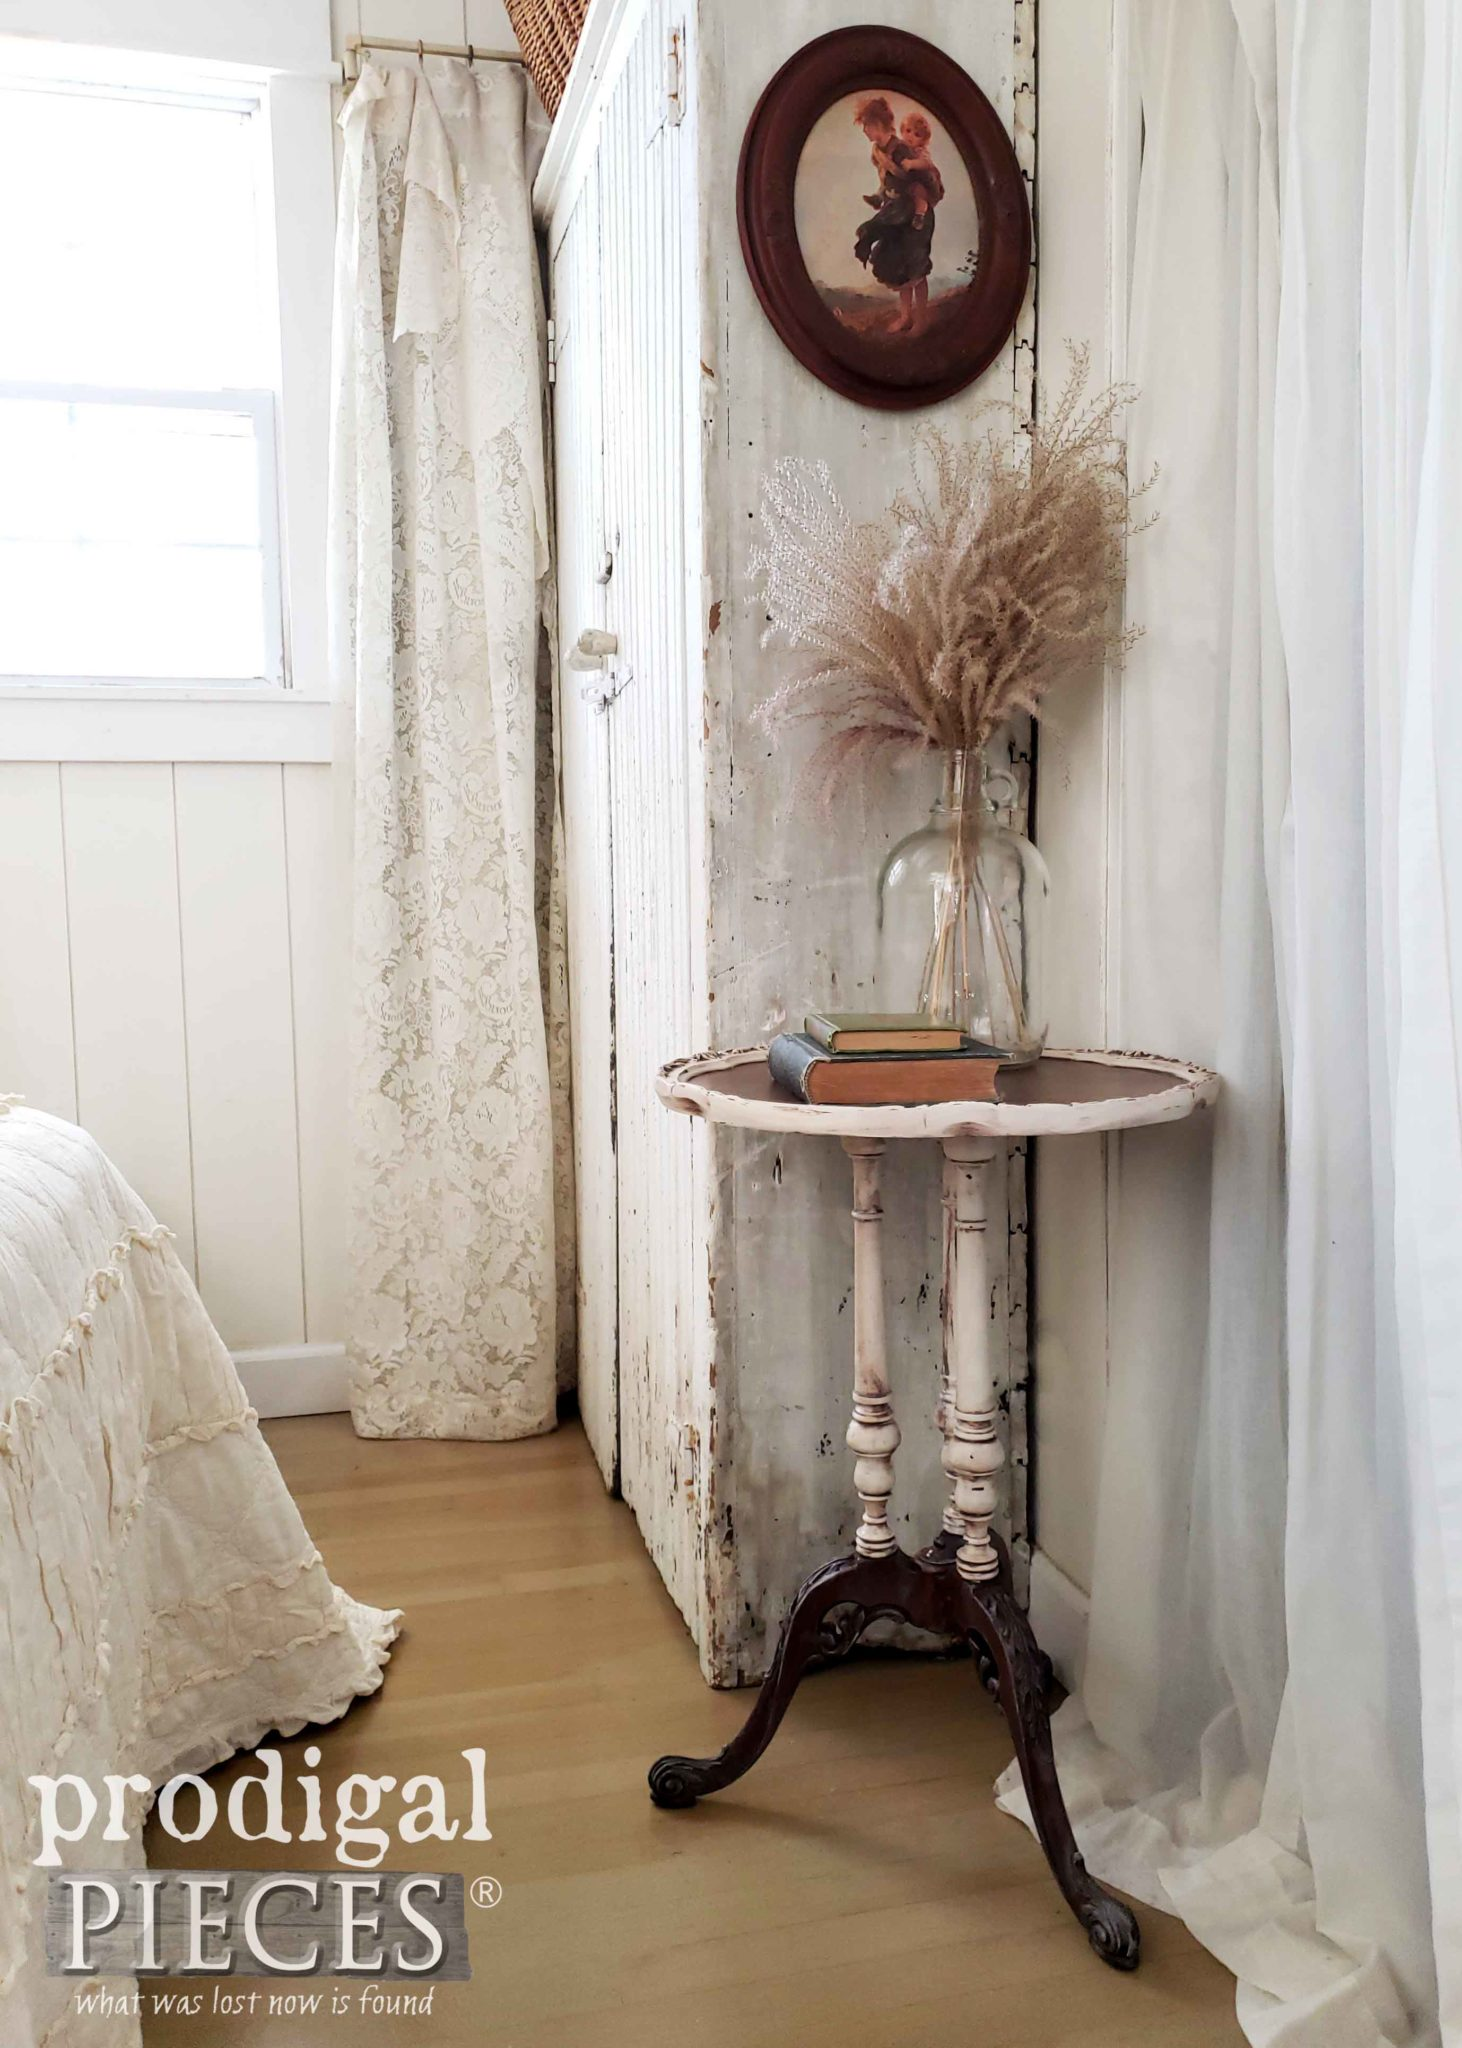 White Farmhouse Style Bedroom with Restored Antique Pie Crust Table by Larissa of Prodigal Pieces | prodigalpieces.com #prodigalpieces #furniture #bedroom #home #homedecor